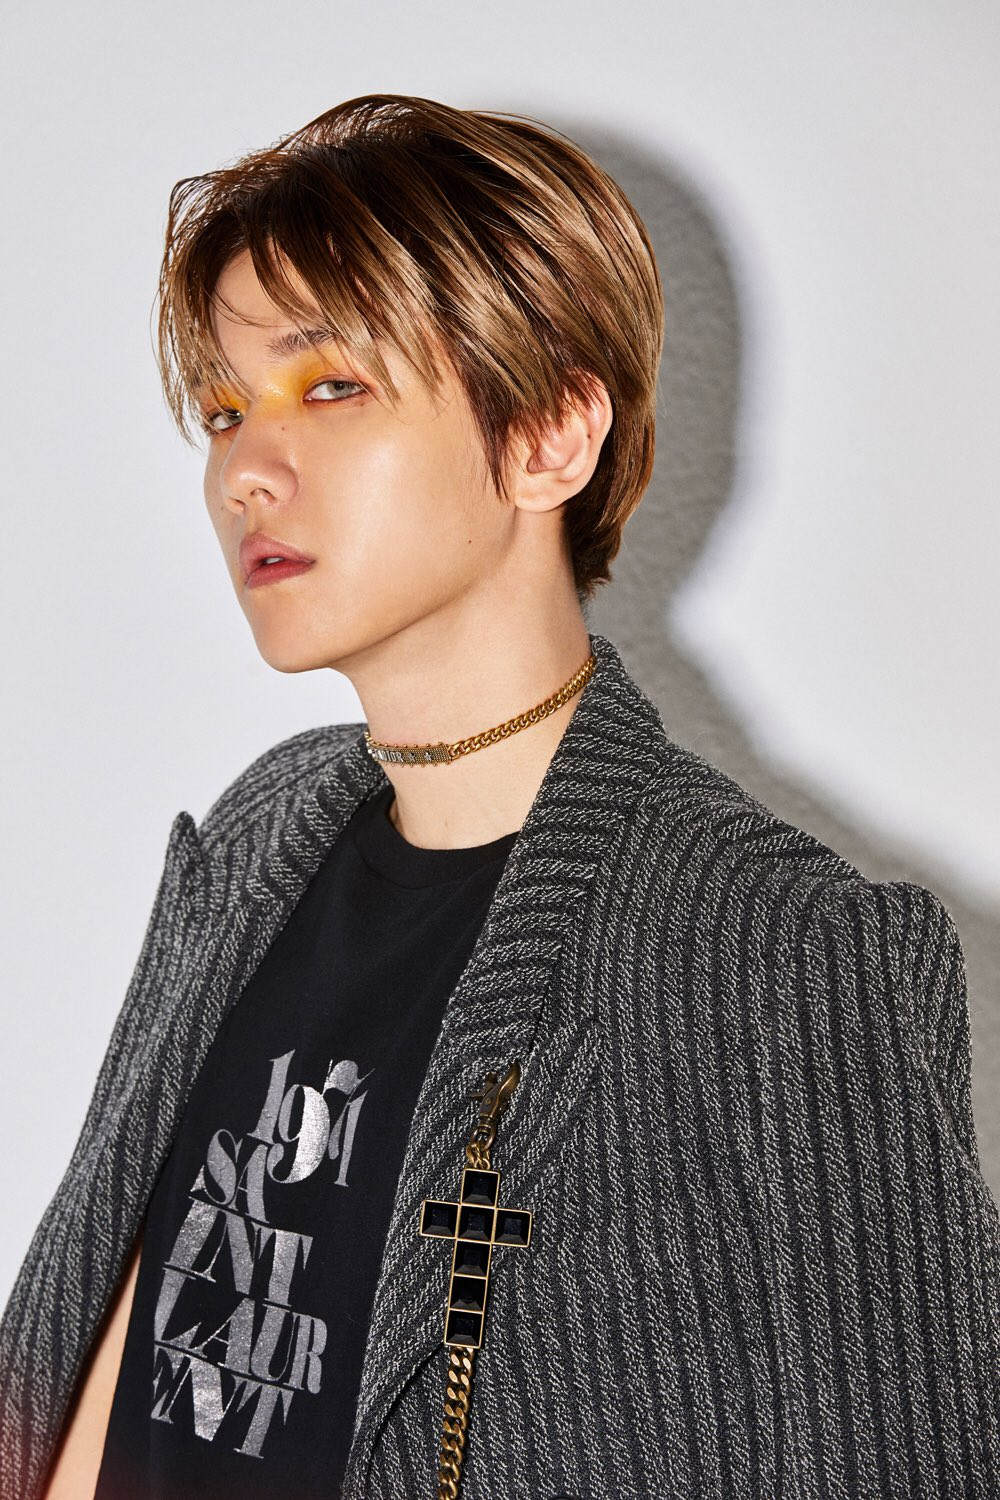 181213 EXO Love Shot Digital Album Photos Album on Imgur